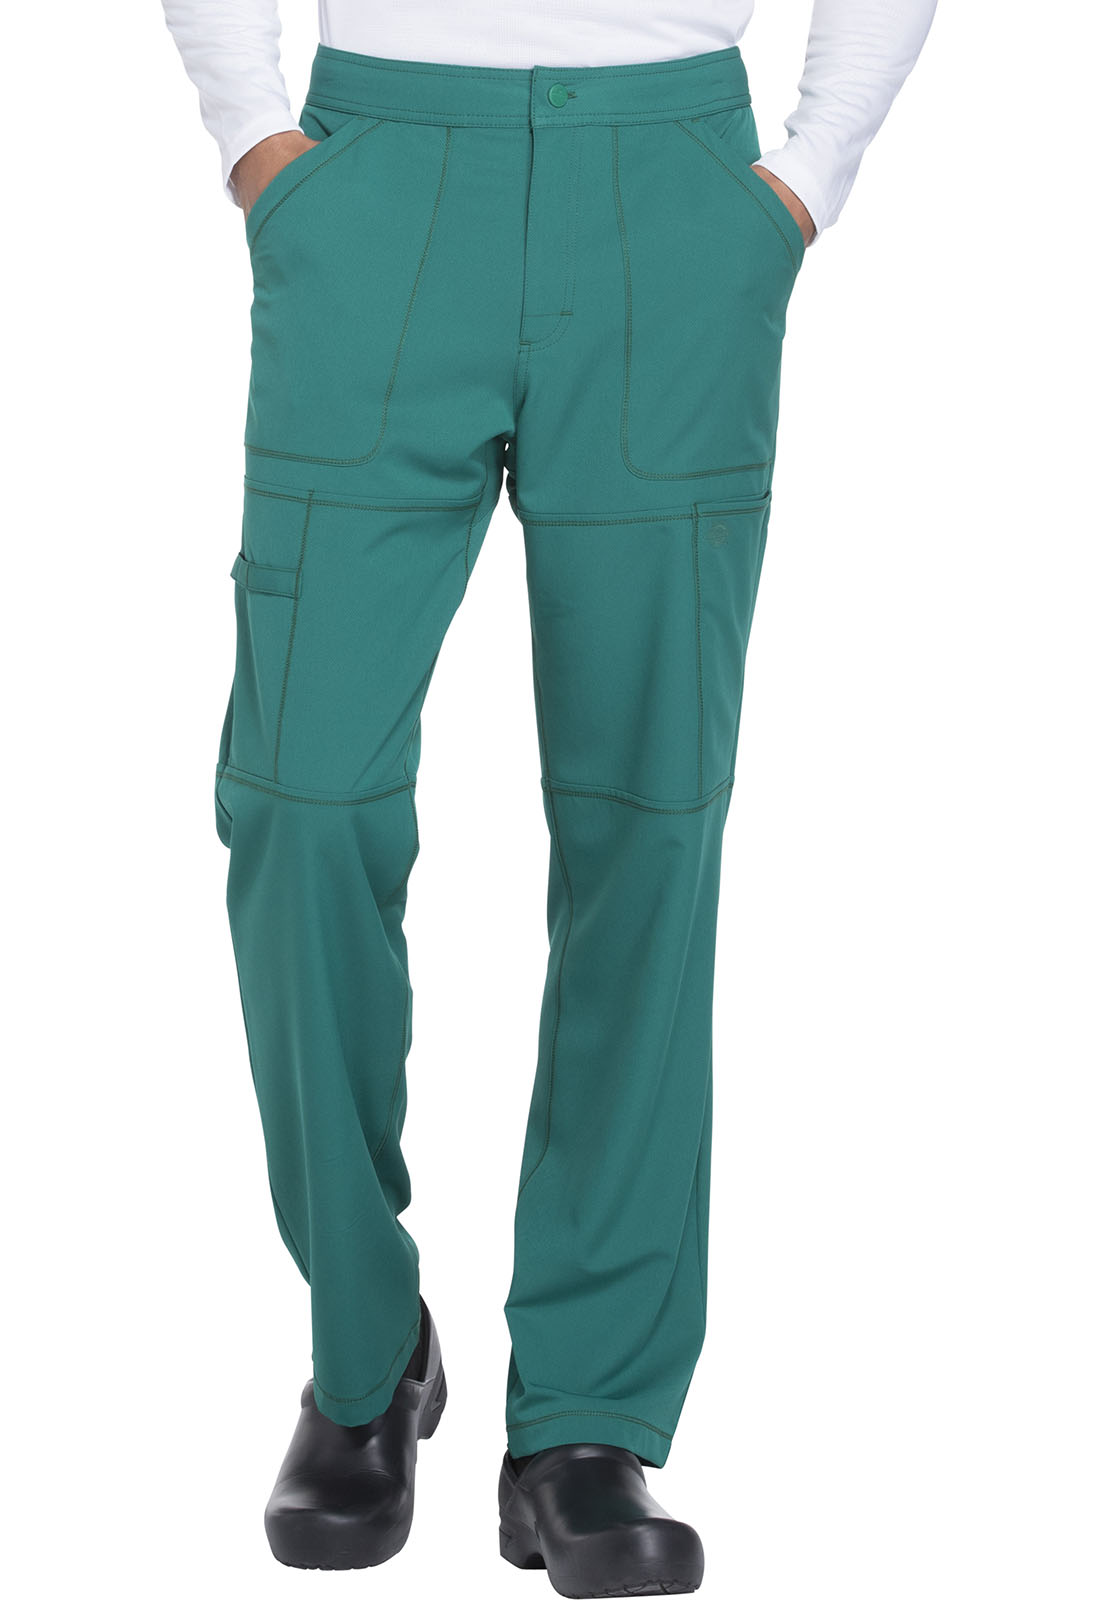 1a65f7599bc Dickies Dynamix Men's Zip Fly Cargo Pant in Hunter Green from ...